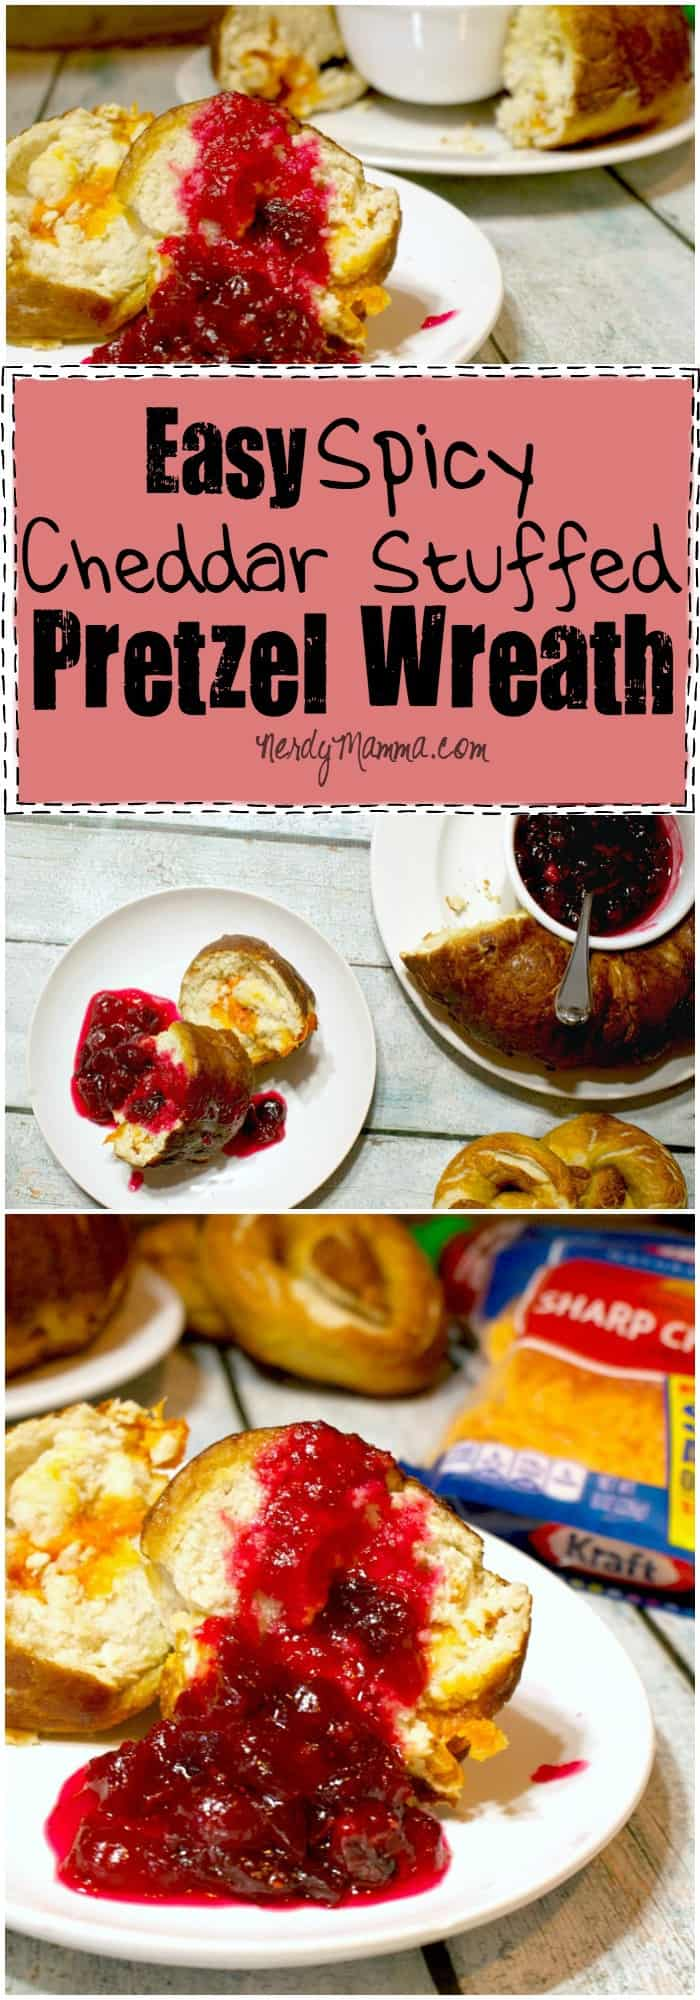 I love this easy spicy cheddar stuffed pretzel wreath. It's like a magical soft-pretzel with the cheese sauce INSIDE. So awesome.